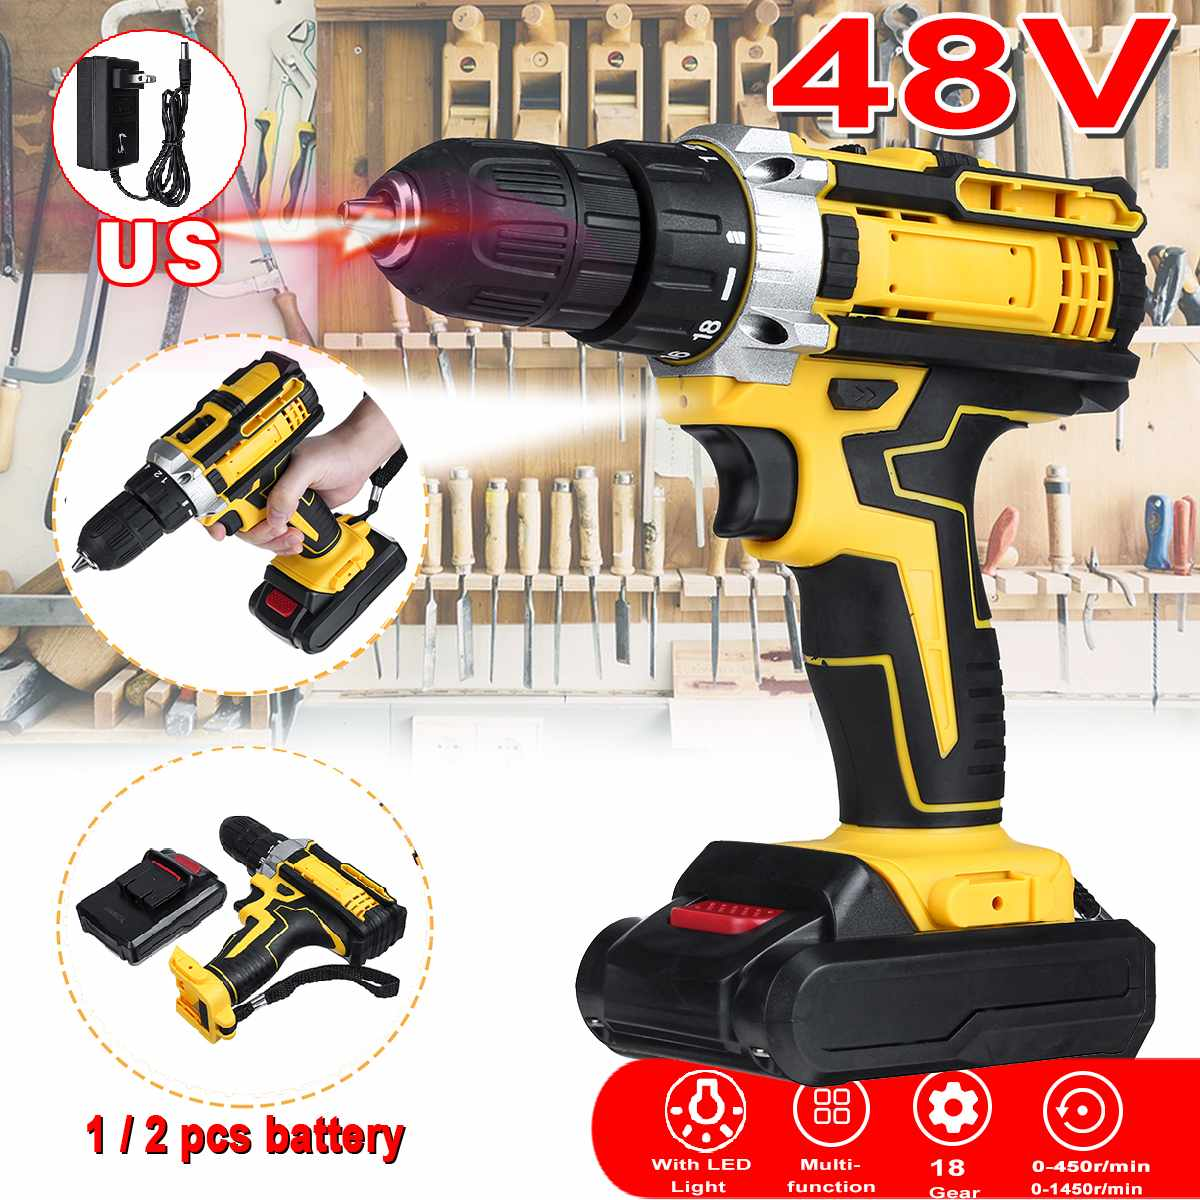 48V 2 Speed Cordless Drill Electric Screwdriver Mini Wireless Power Driver DC Lithium-Ion Battery 18-speed Torque Adjustment